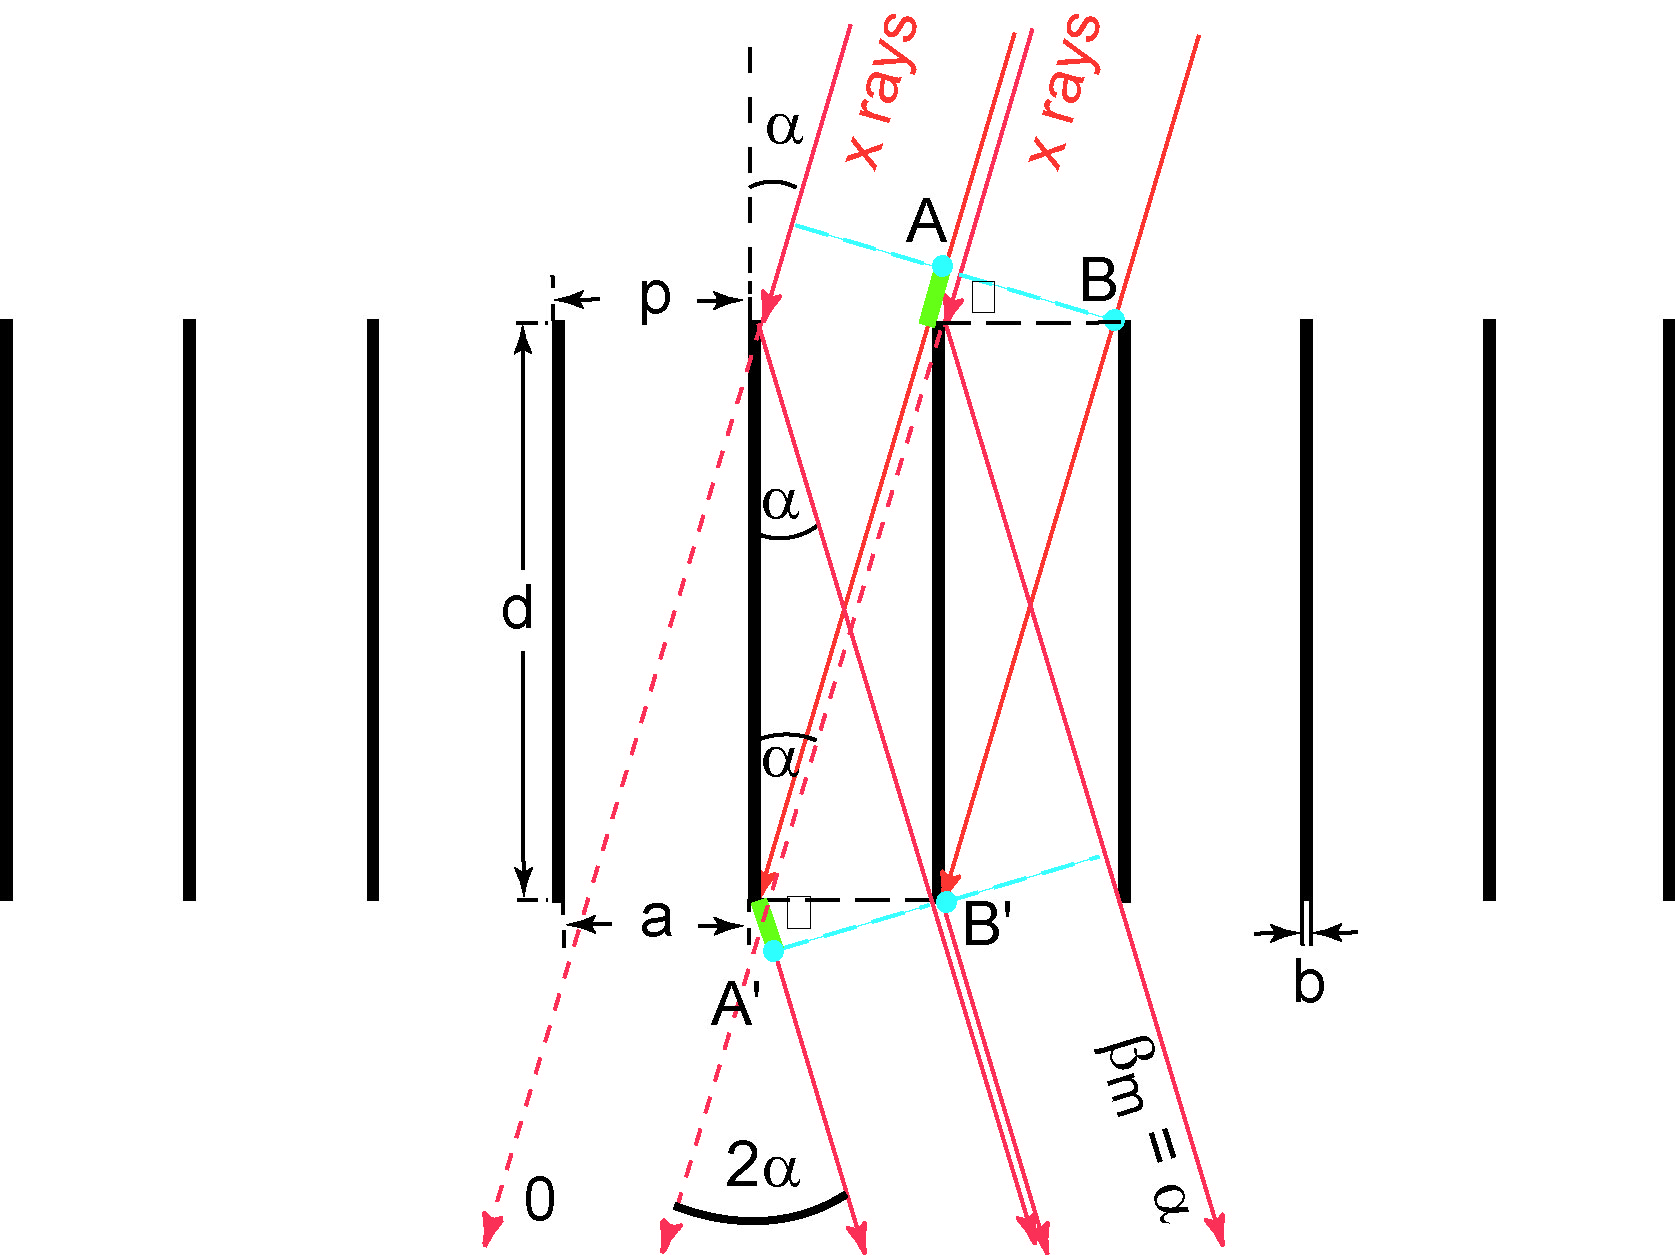 hight resolution of schematic of the basic cat grating concept